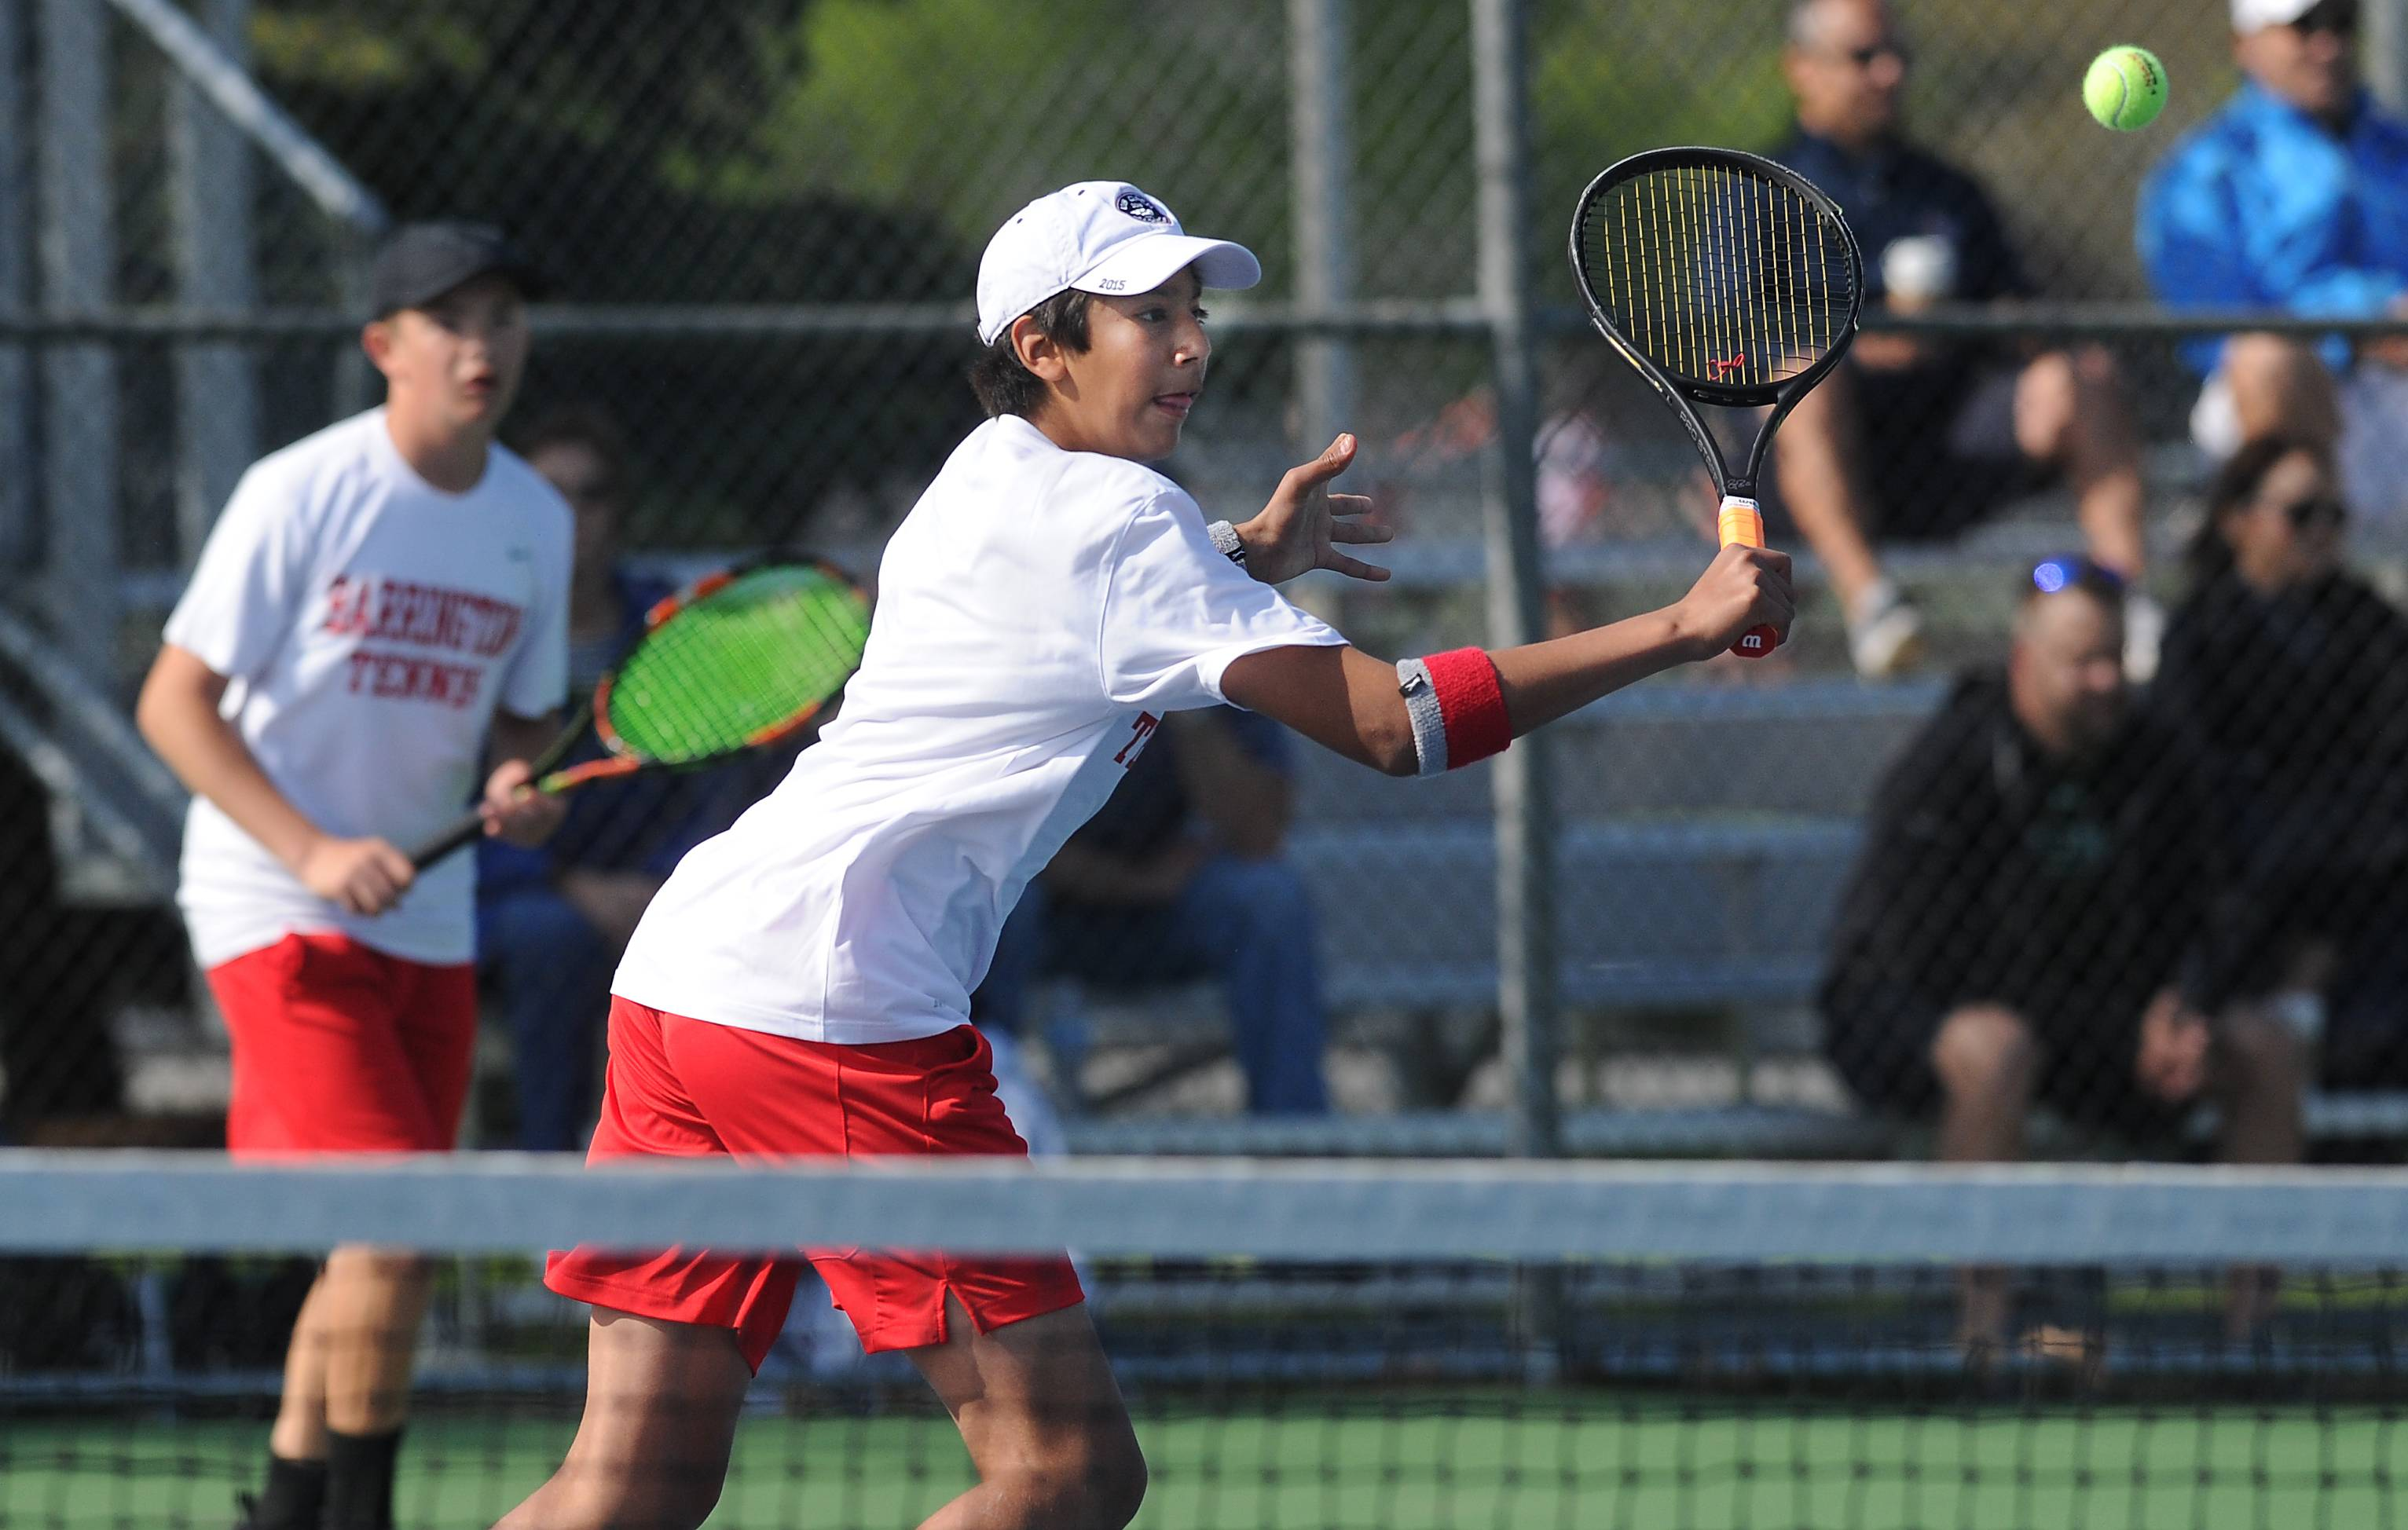 Barrington's Aryan Sharma, here returning a shot alongside partner Matthew D'Amore, compete with the teammates in a tough Cary-Grove sectional this weekend.